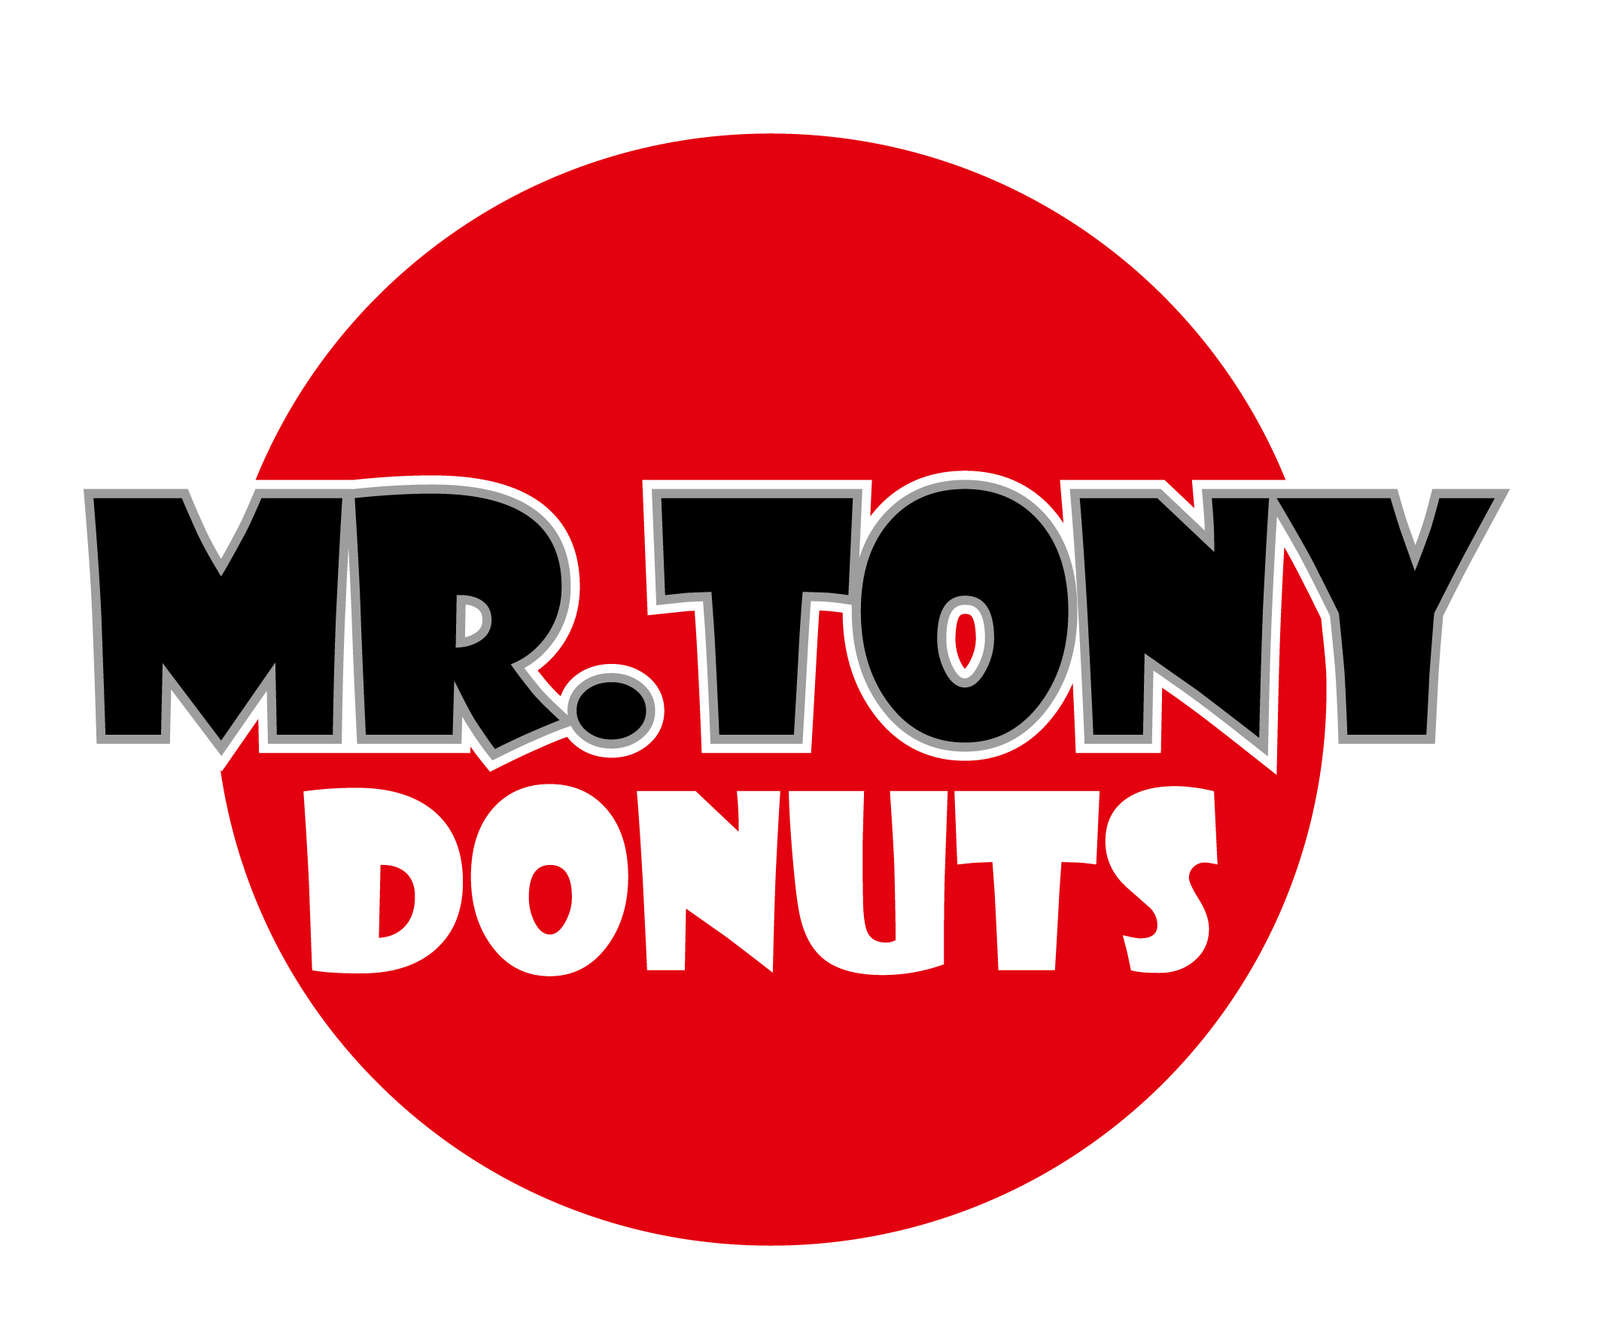 Mr. Tony donuts